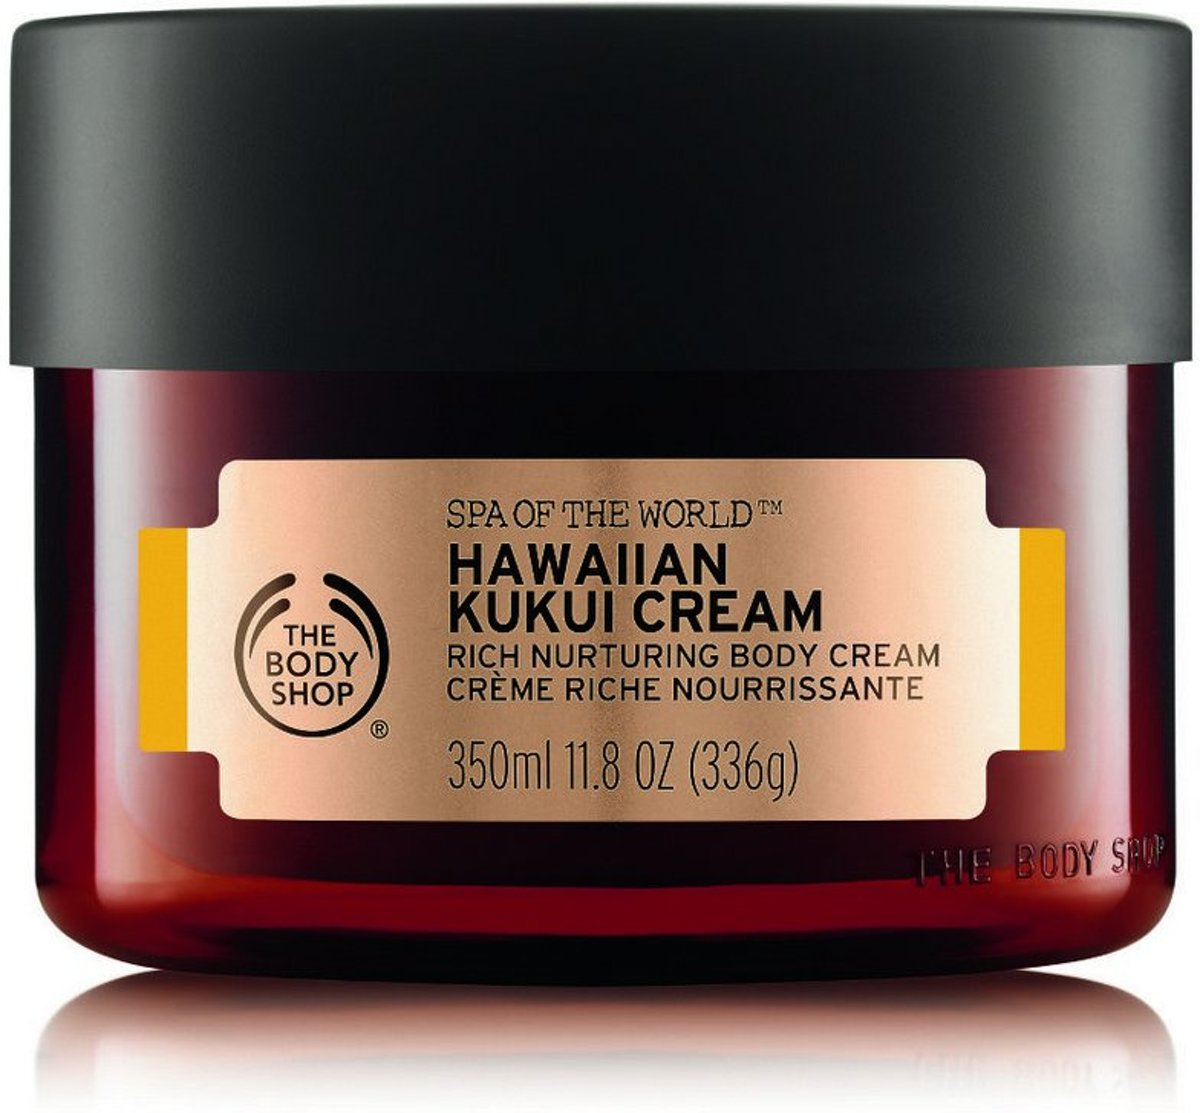 The Body Shop Body Cream 350ml